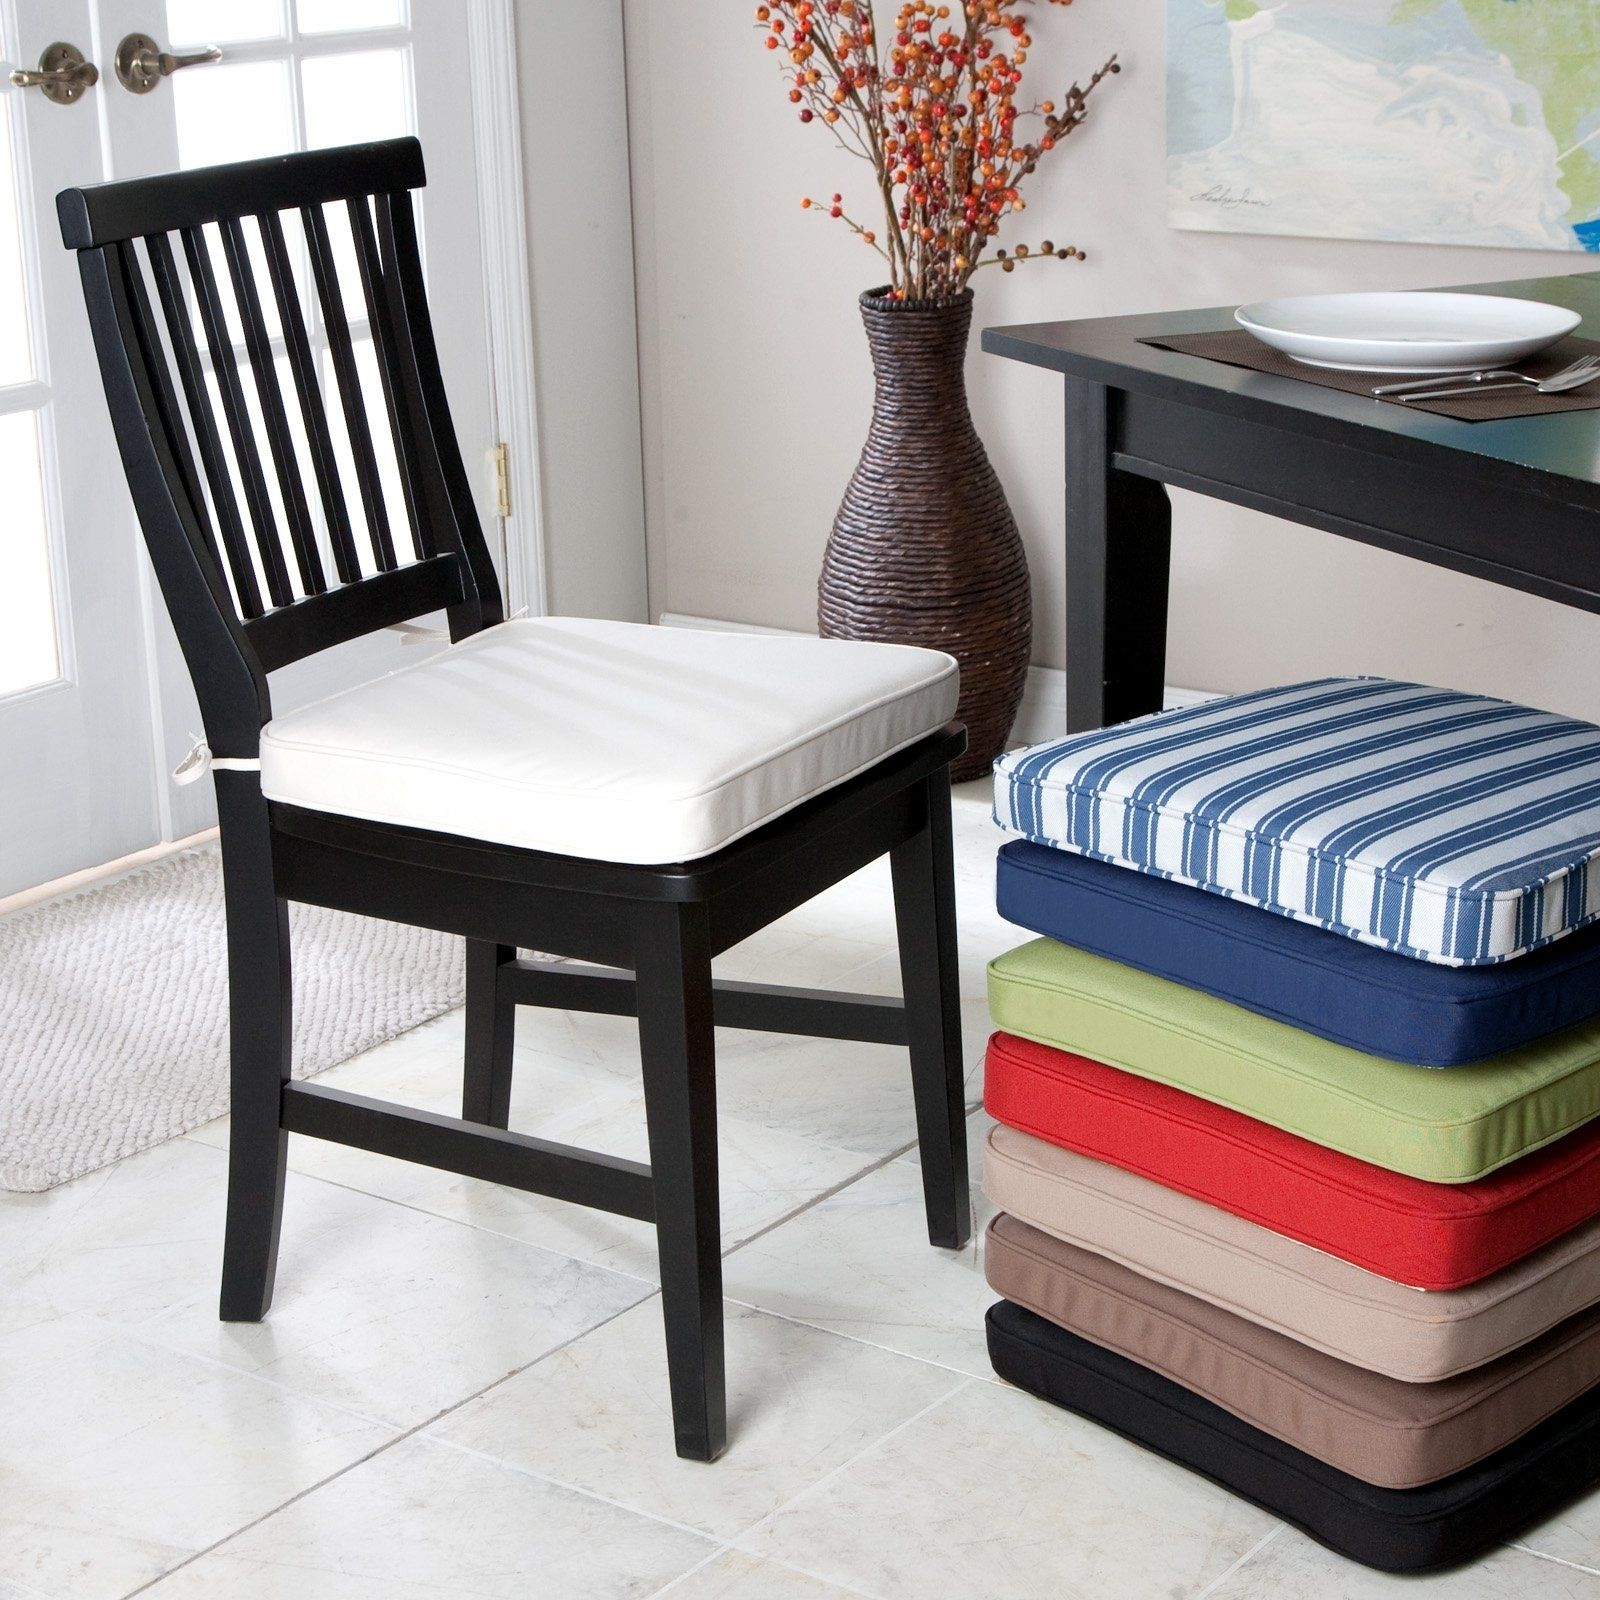 How To Find The Right Dining Room Chair Cushions Darbylanefurniture Com In 2020 With Images Dining Chair Pads Kitchen Chair Cushions Dining Room Chair Covers